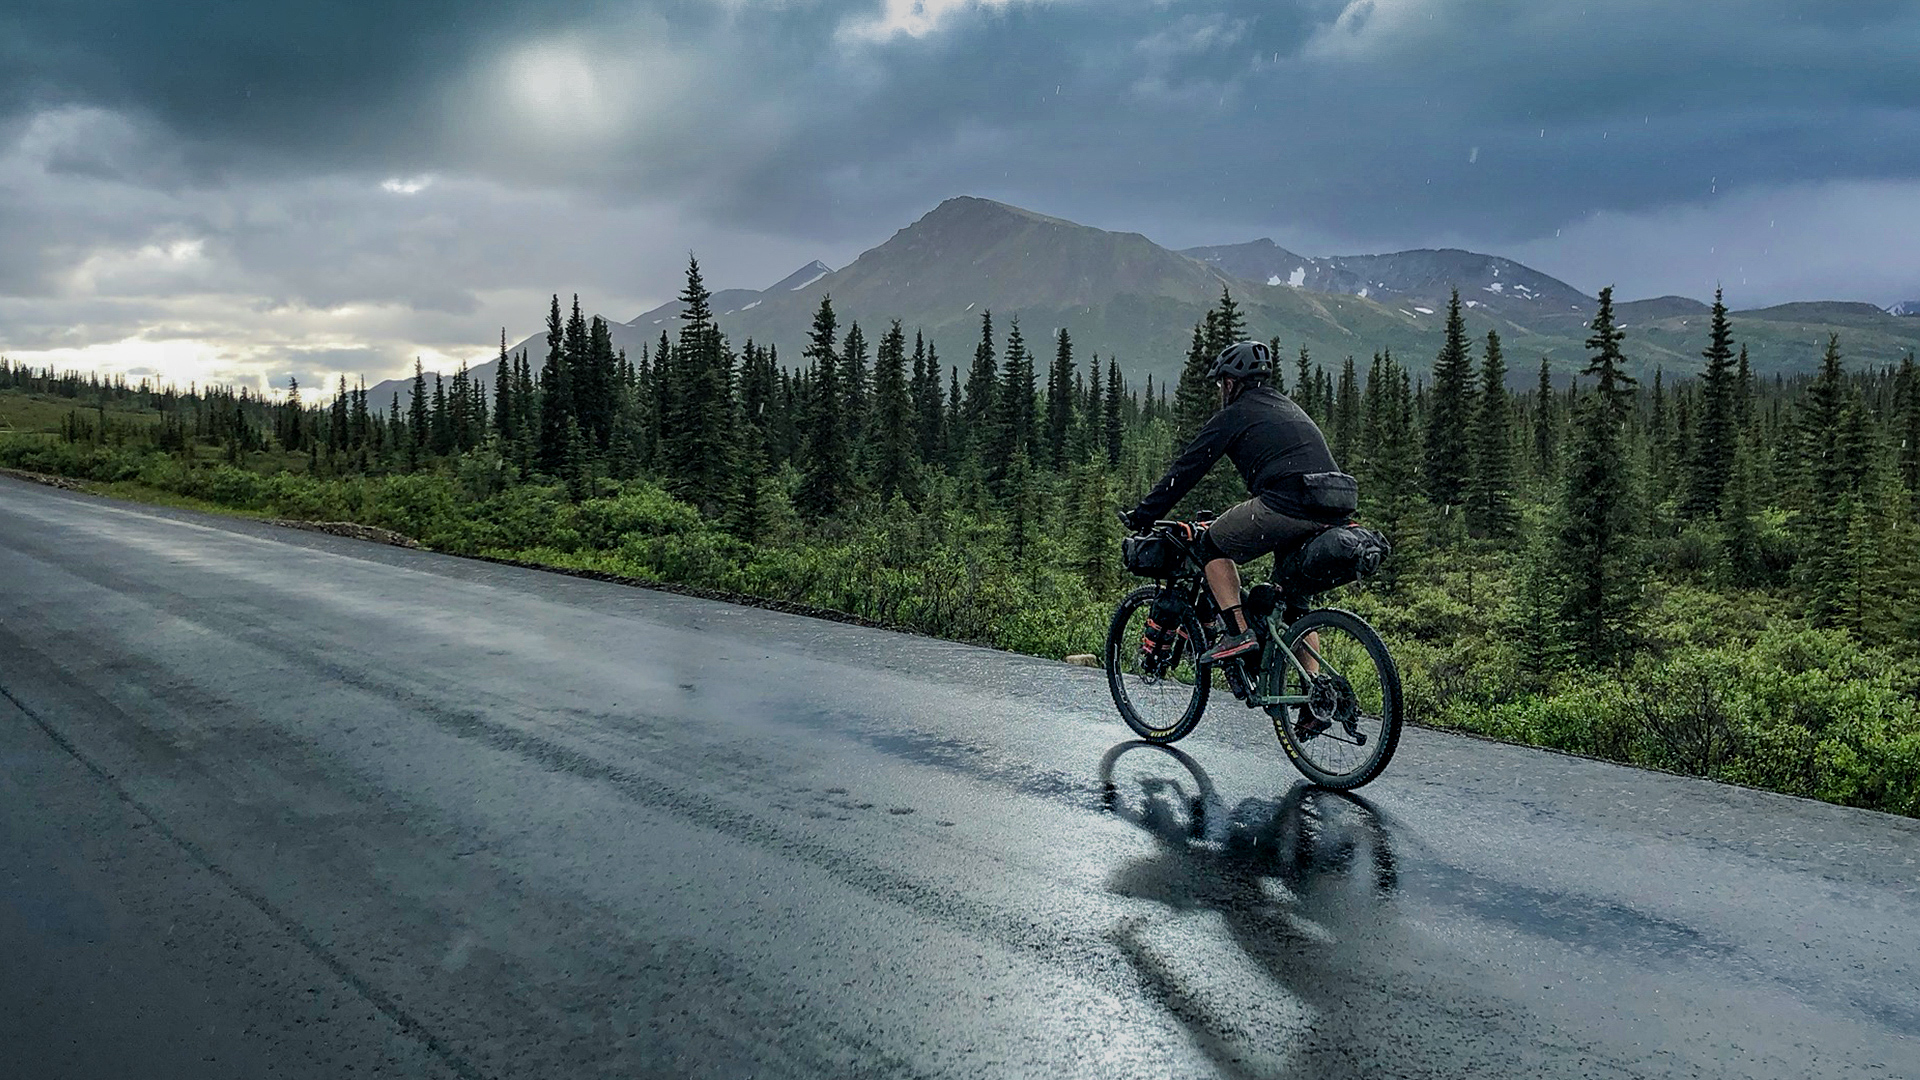 Bikepacking Alaska | Pedaling towards Denali